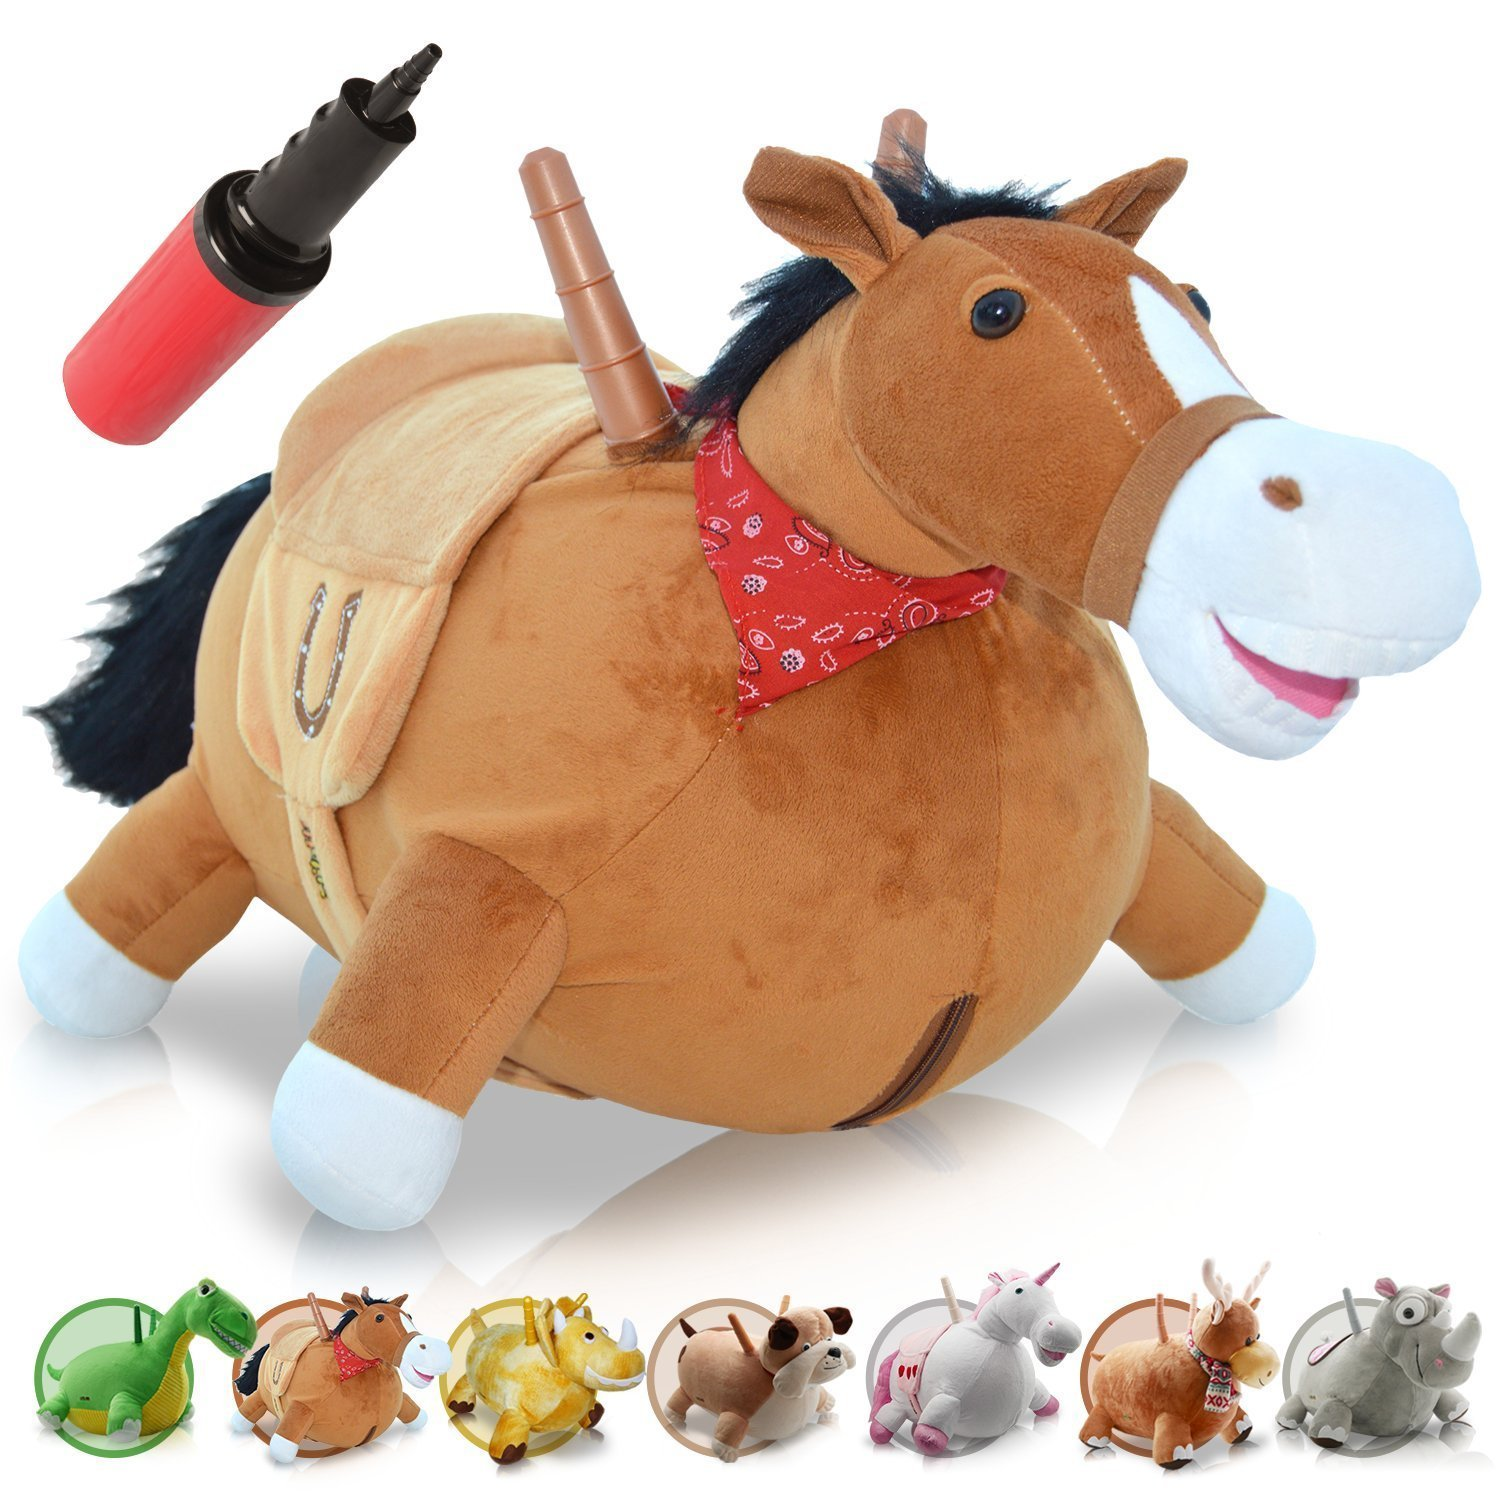 WALIKI TOYS Bouncy Horse Hopper Mr Jones Hopping Horse Inflatable Ride On Pony Ridding Horse For Kids Jumping Horse Pump Included